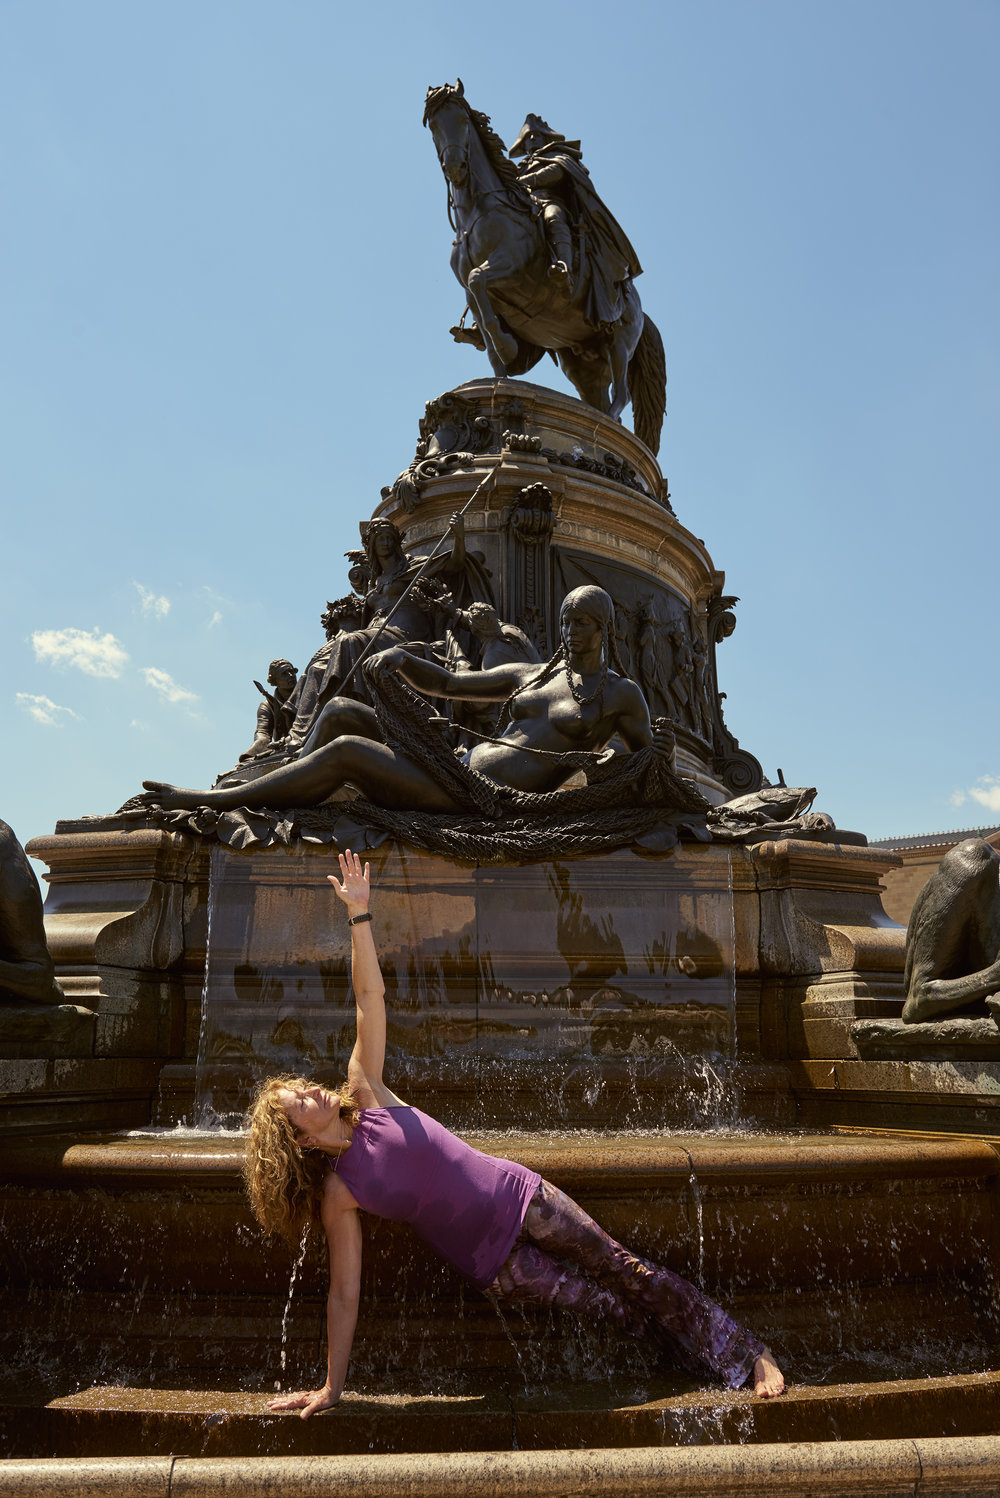 Rosa practicing yoga in an Eakin's Oval fountain in front of the Philadelphia Art Museum.